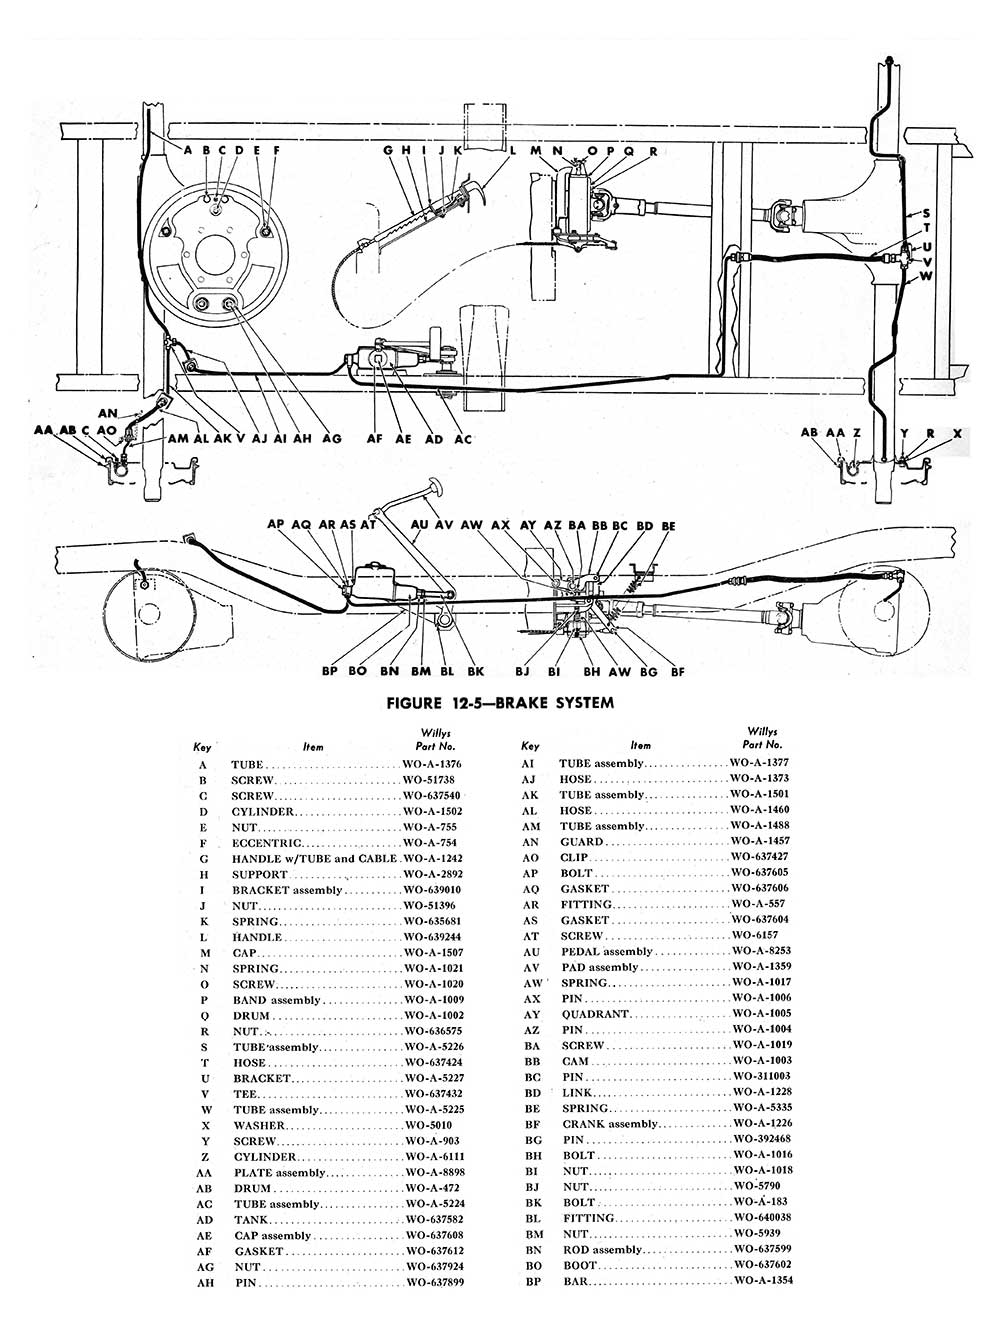 jeepster engine wiring diagram  diagram  auto wiring diagram